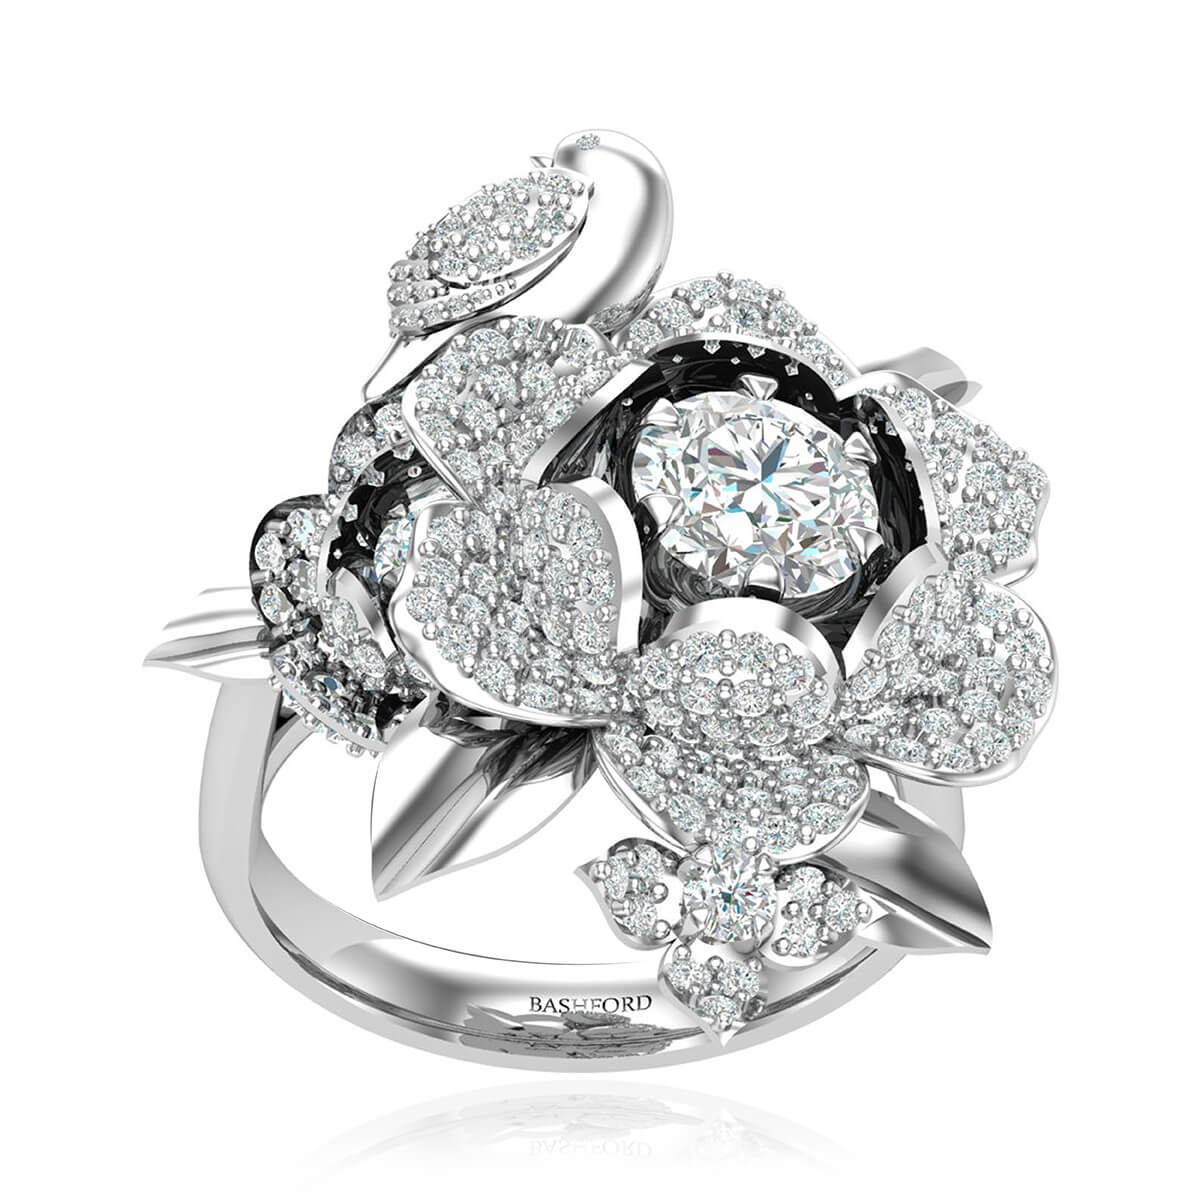 The Paradise Bird Diamond Ring